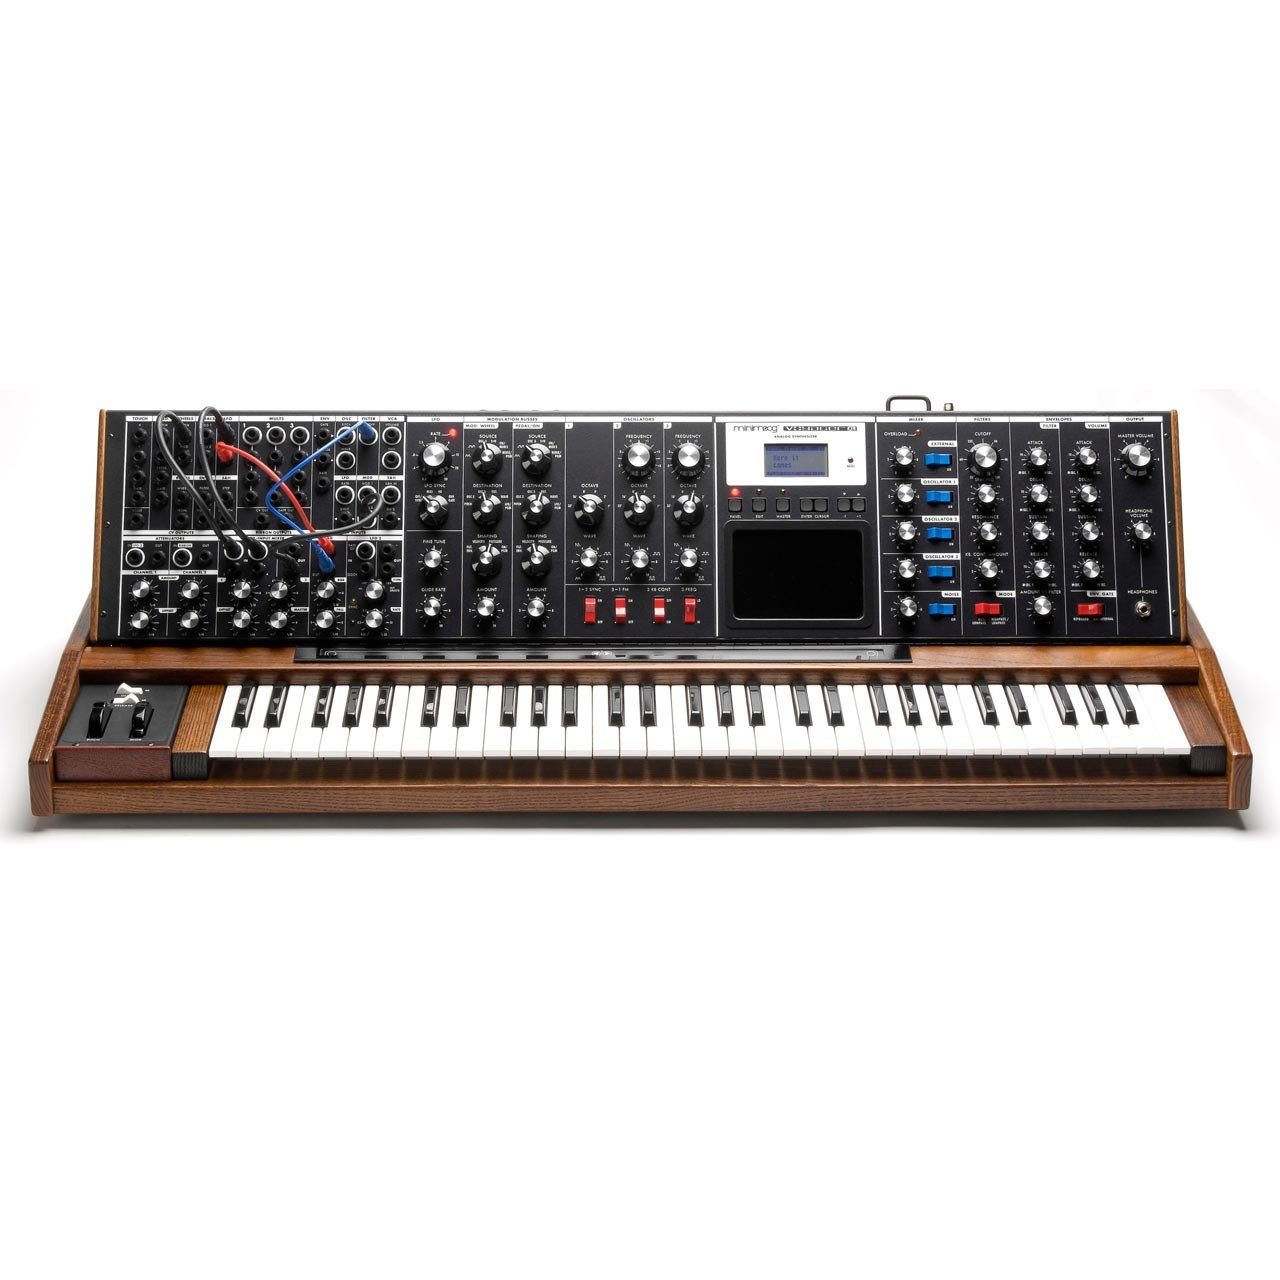 Keyboard Synthesizers - Moog Minimoog Voyager XL Analog Synthesizer